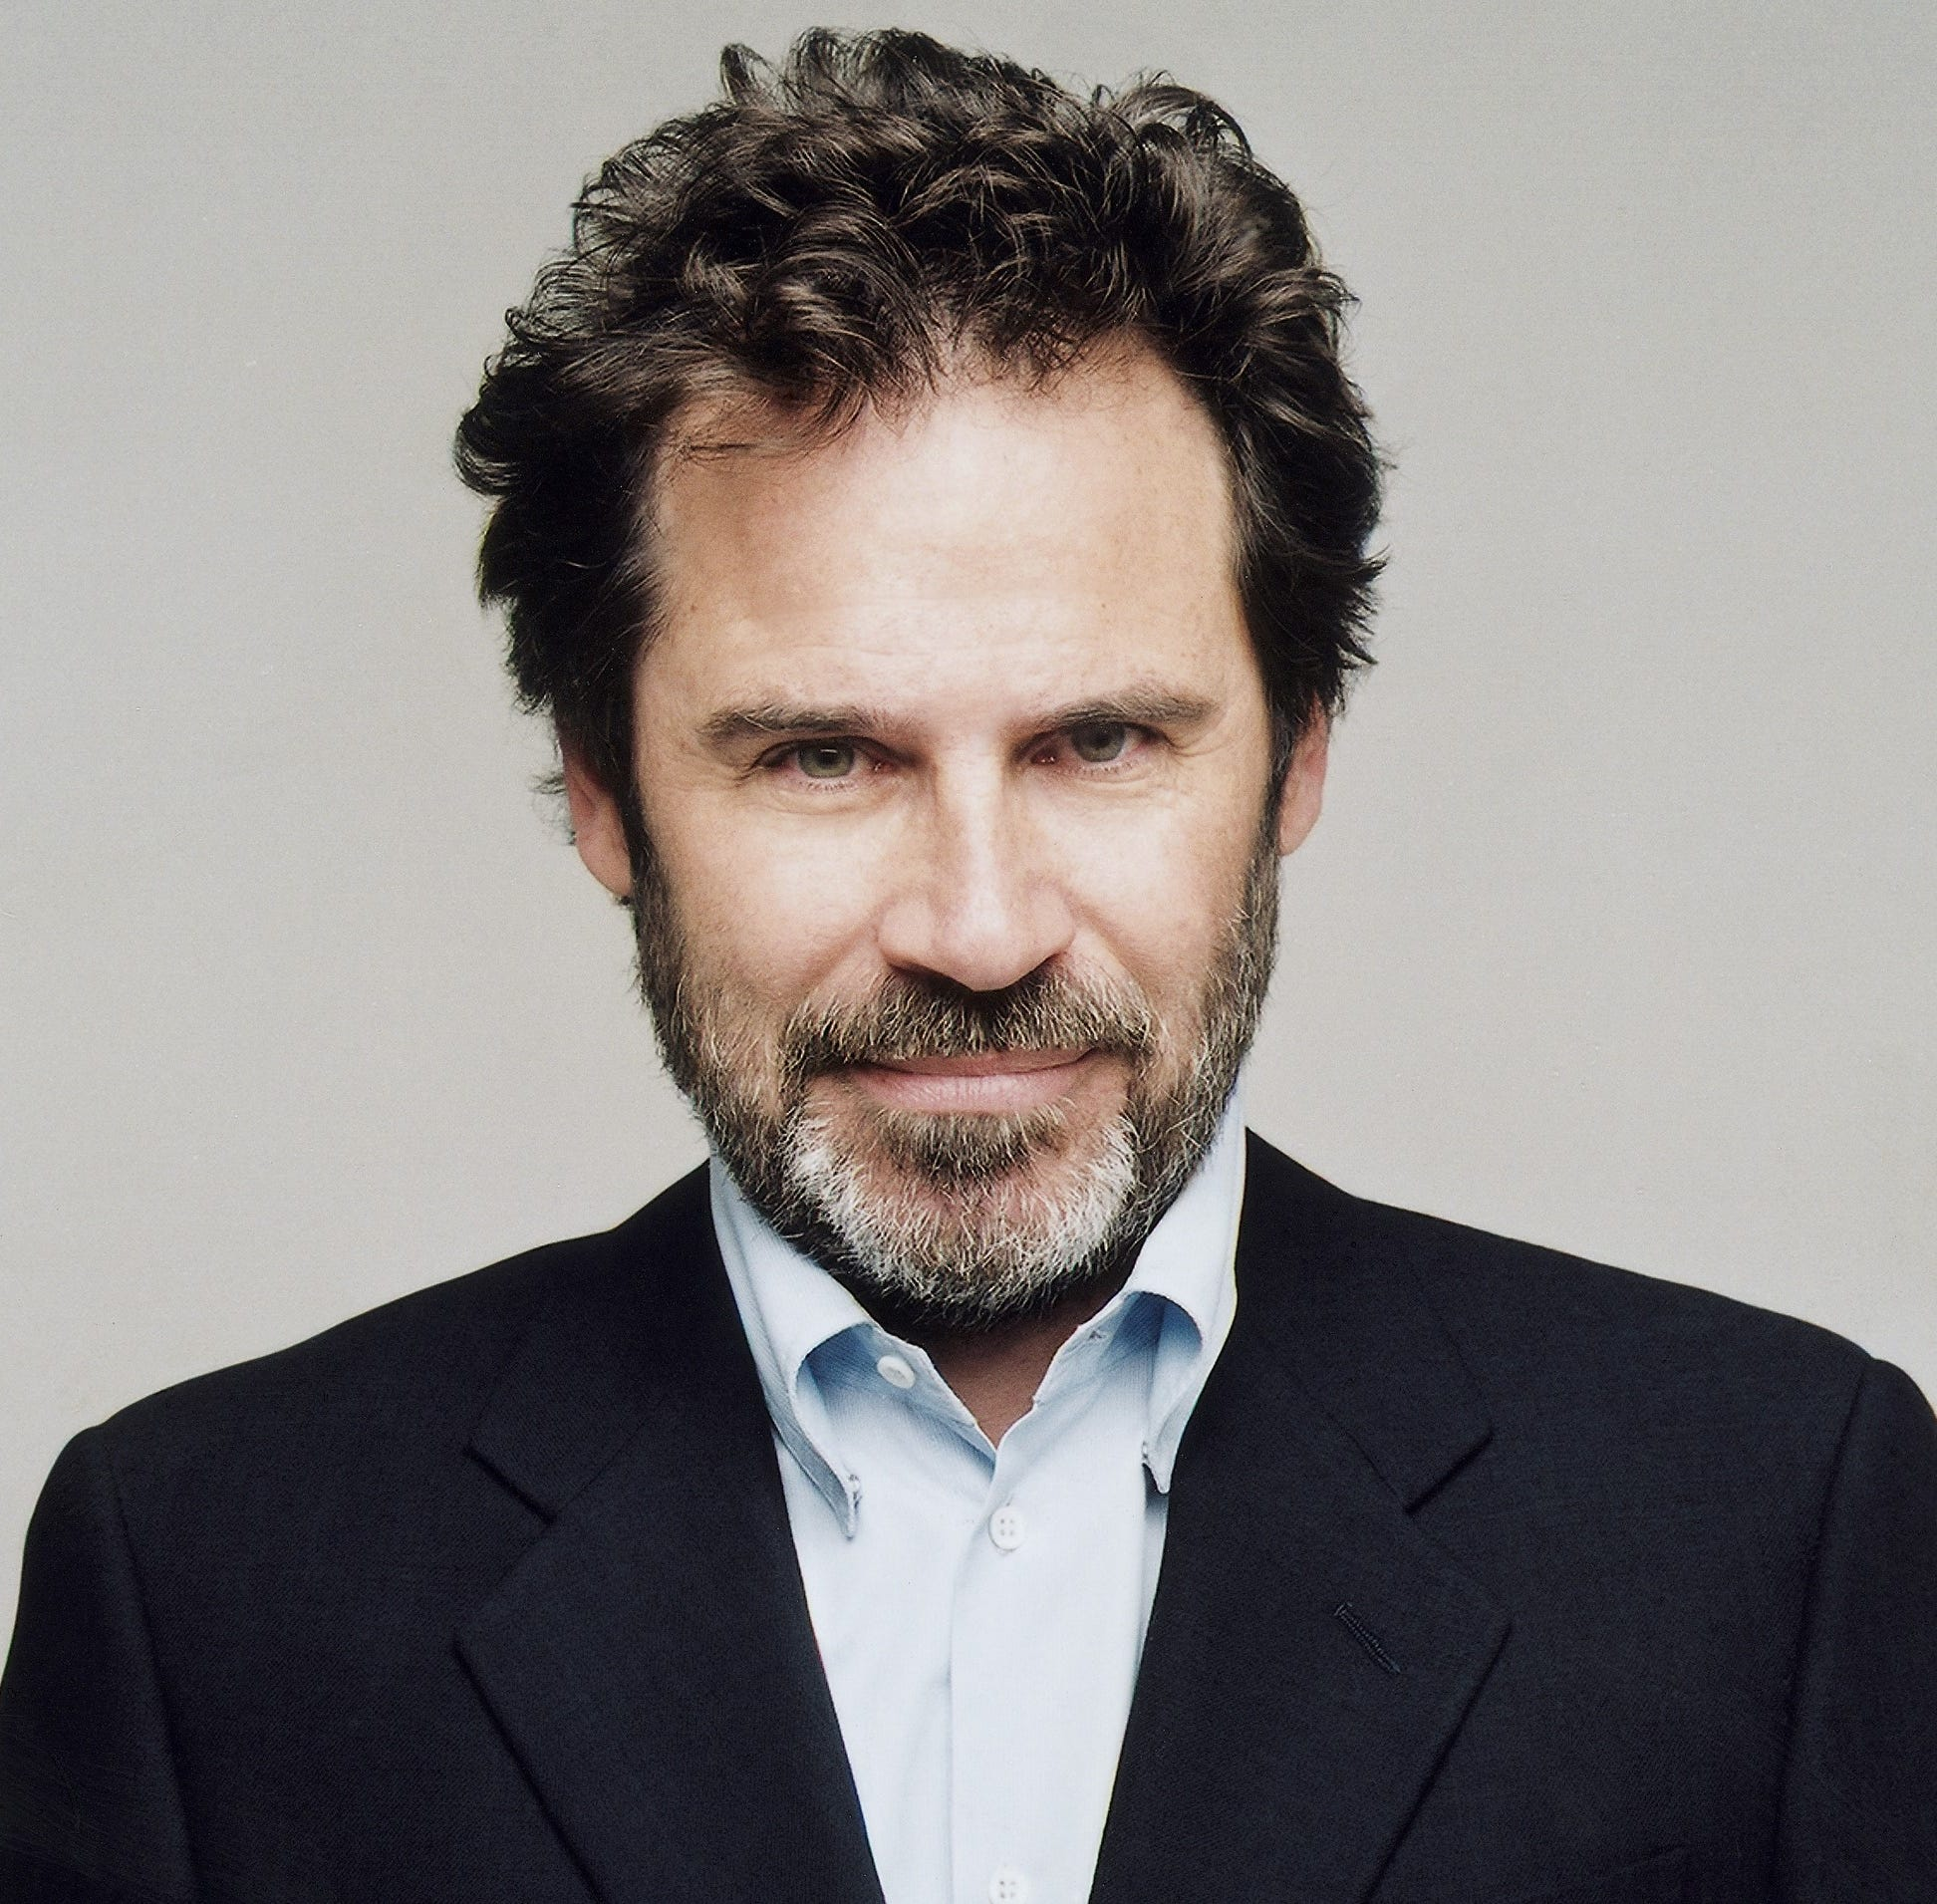 Dennis Miller: I think news has always been fake